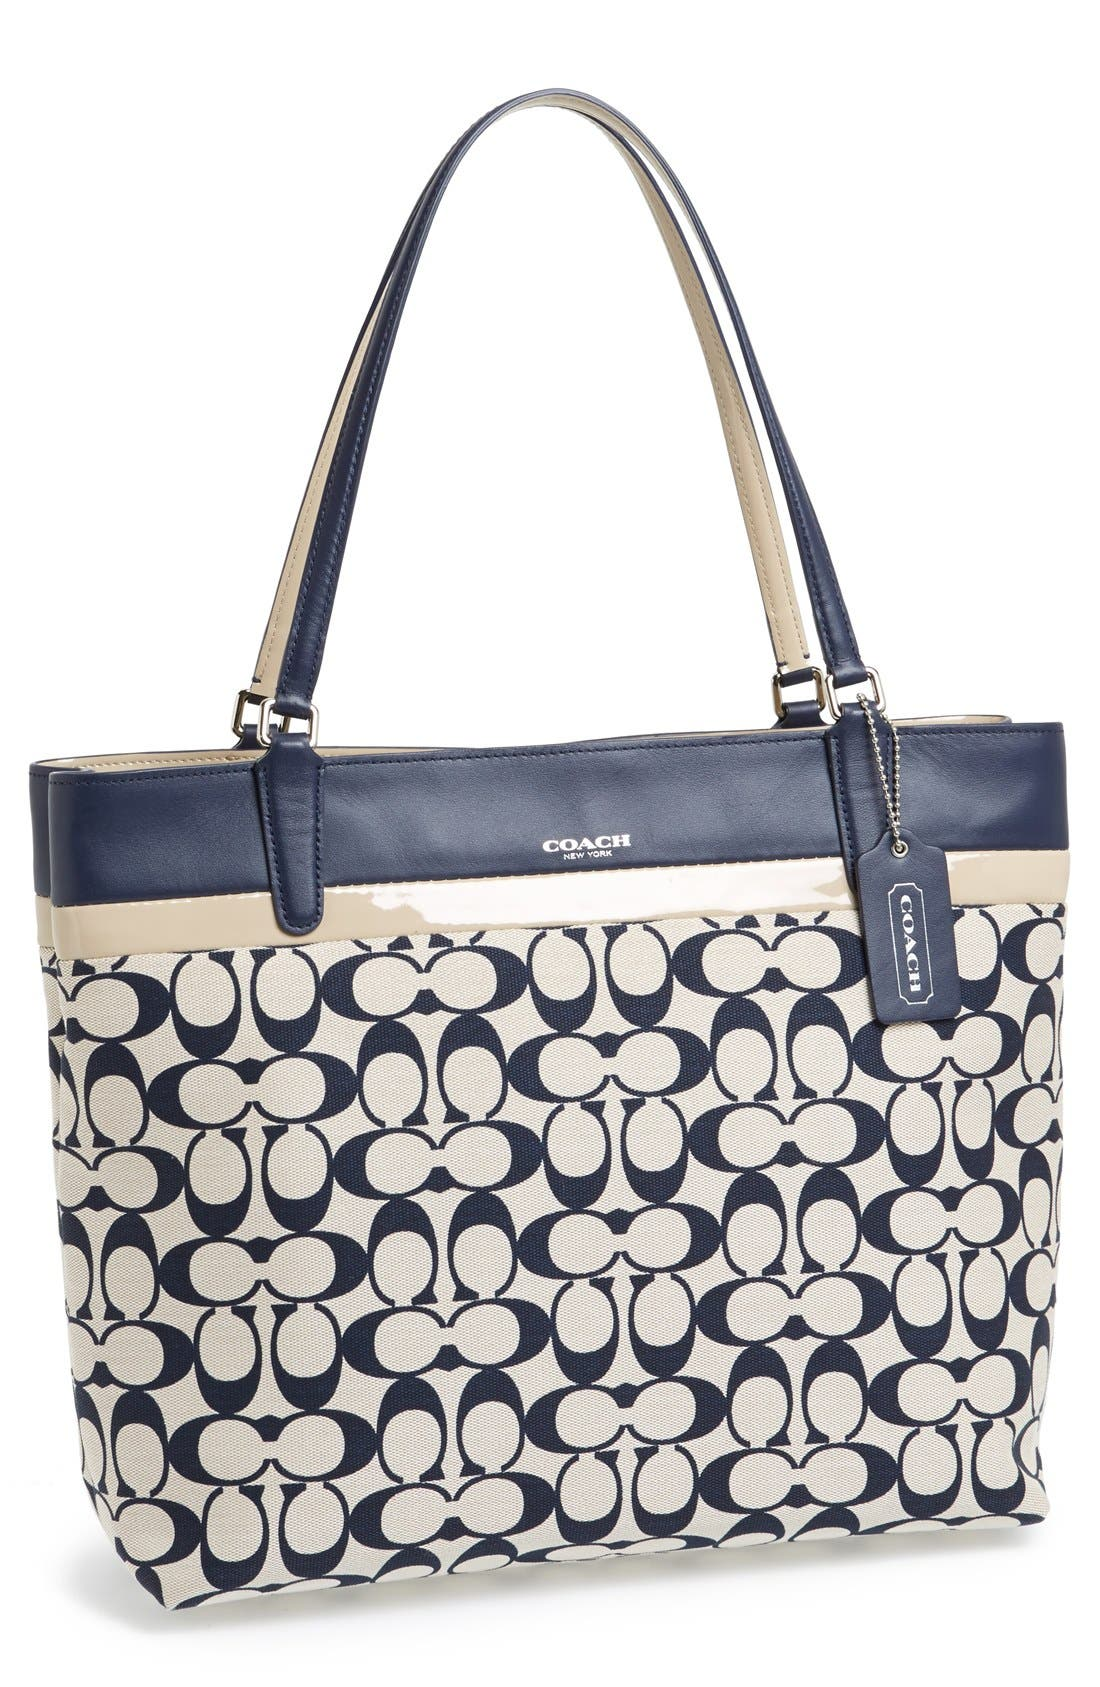 Main Image - COACH 'Small Signature' Tote